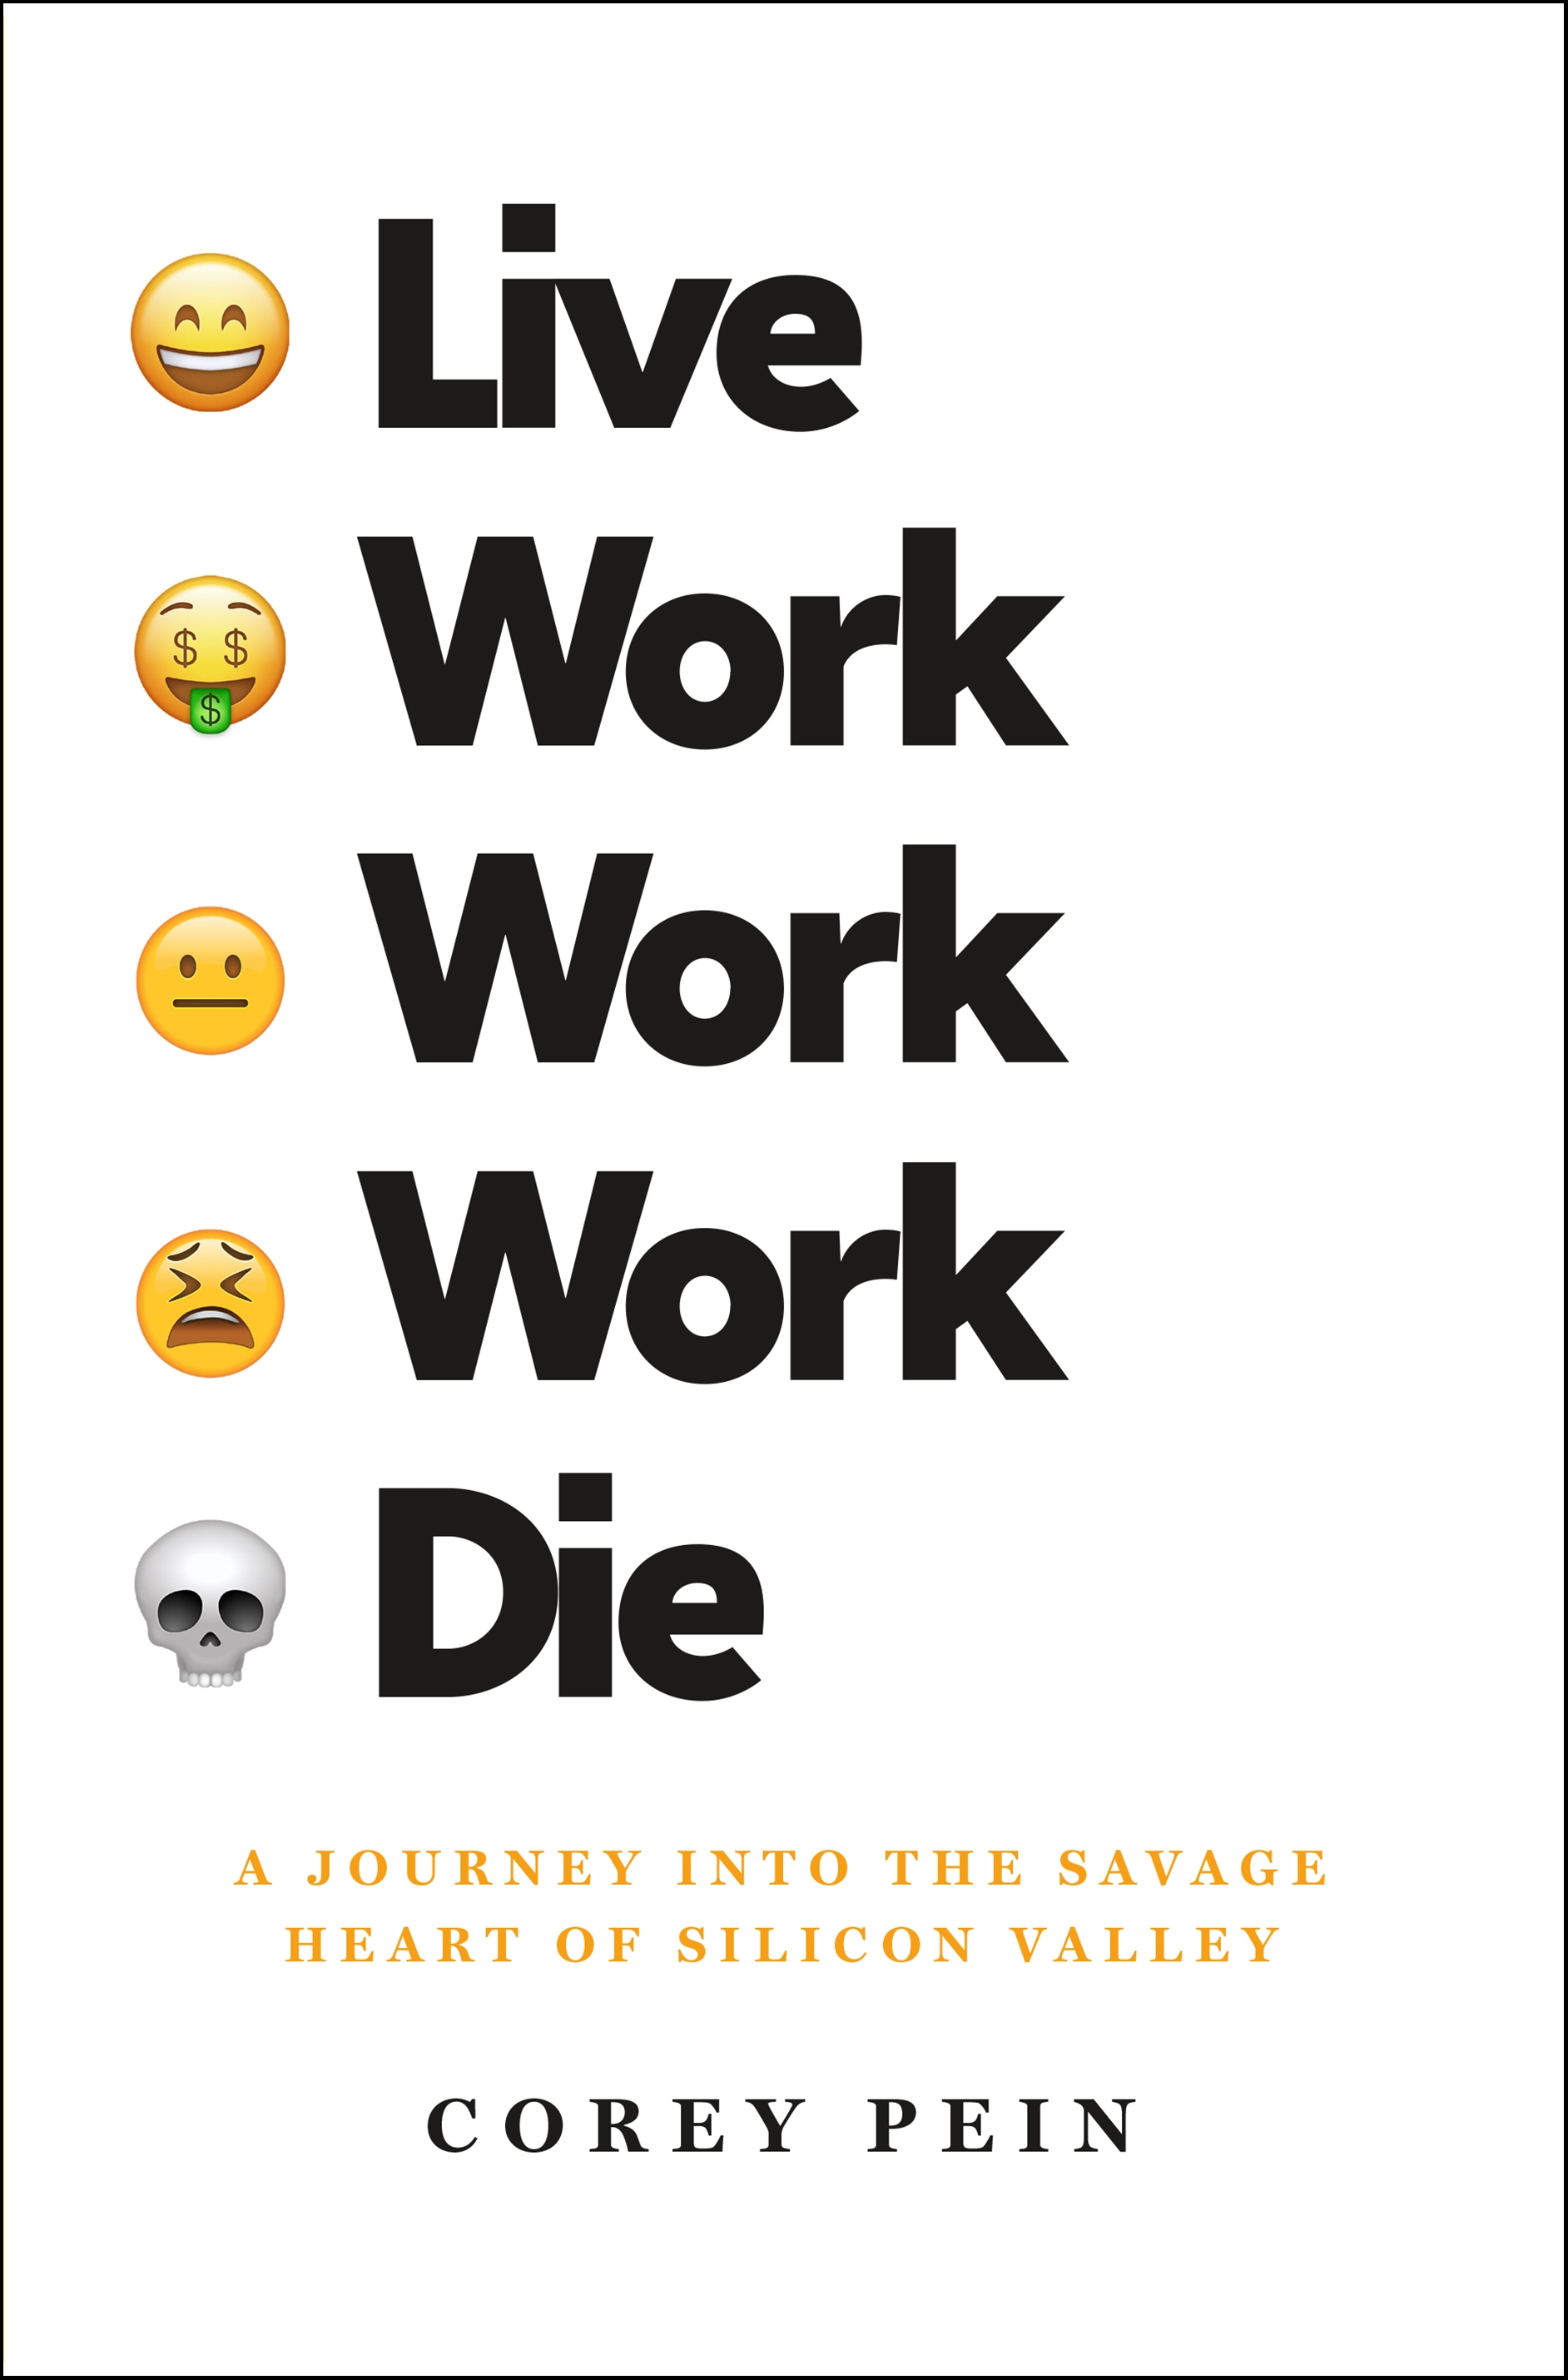 Book Launch: Live Work Work Work Die by Corey Pein